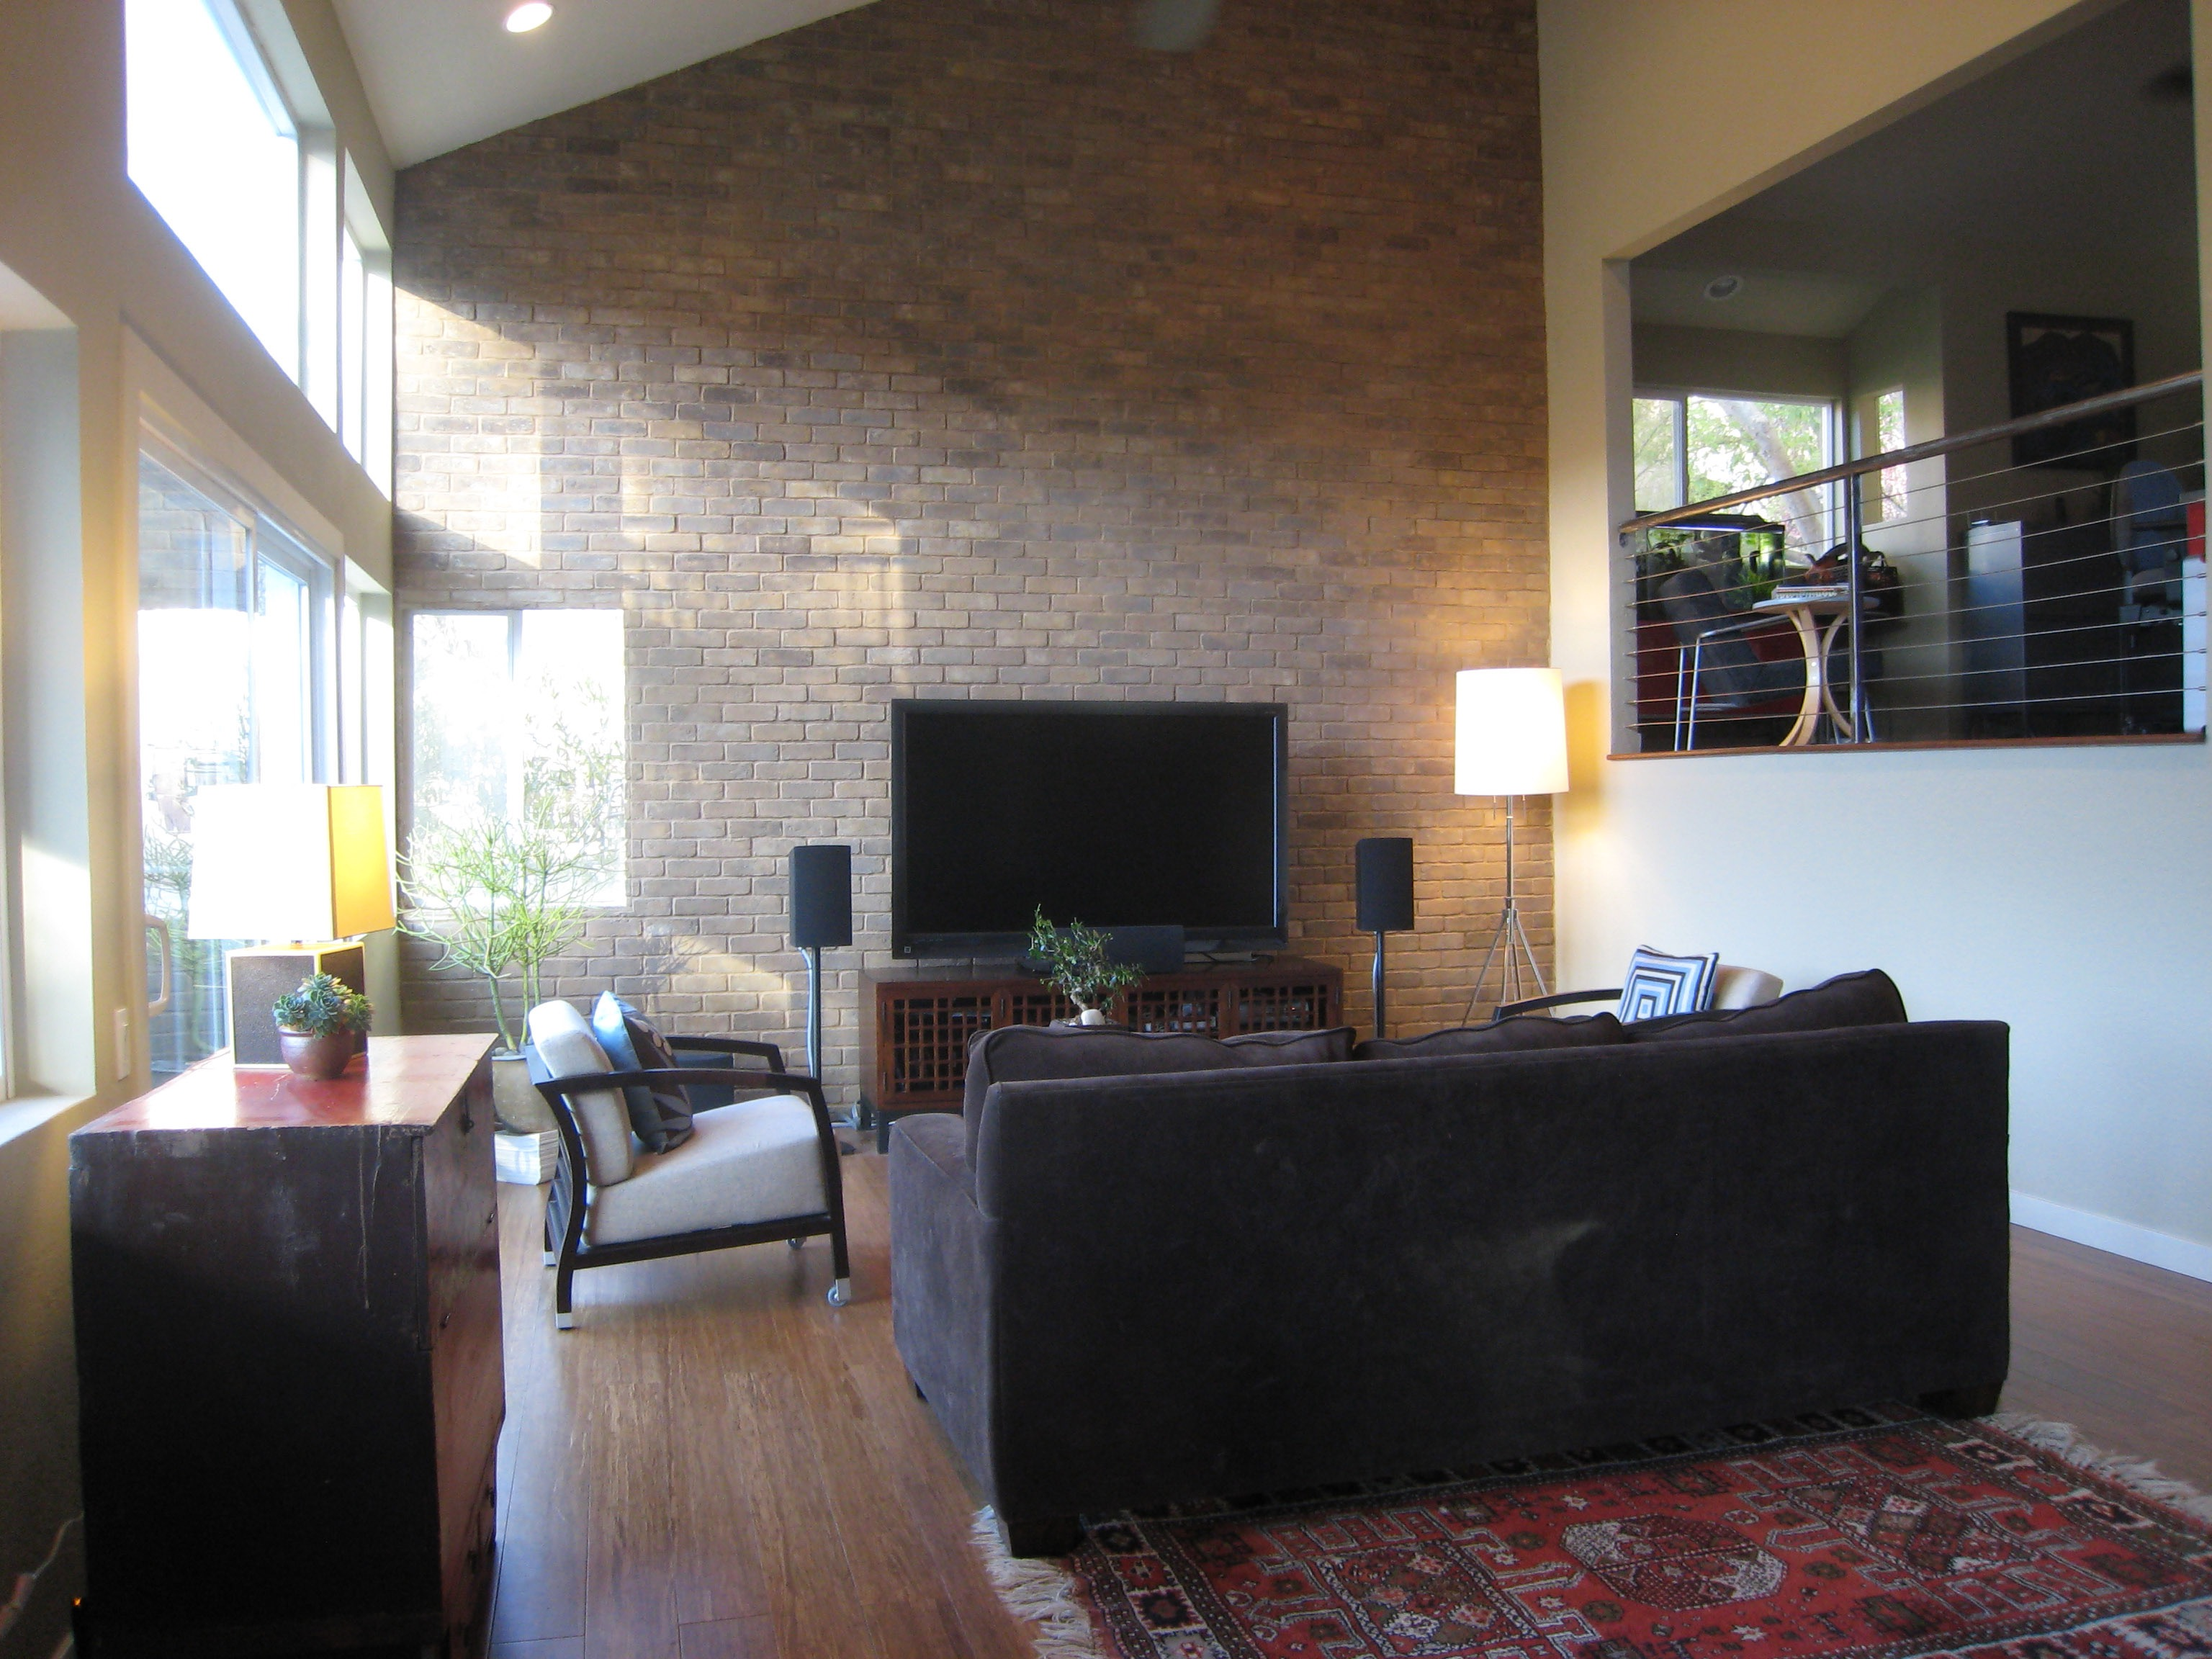 Easy Decor For Modern Living Room With TV (Image 14 of 31)